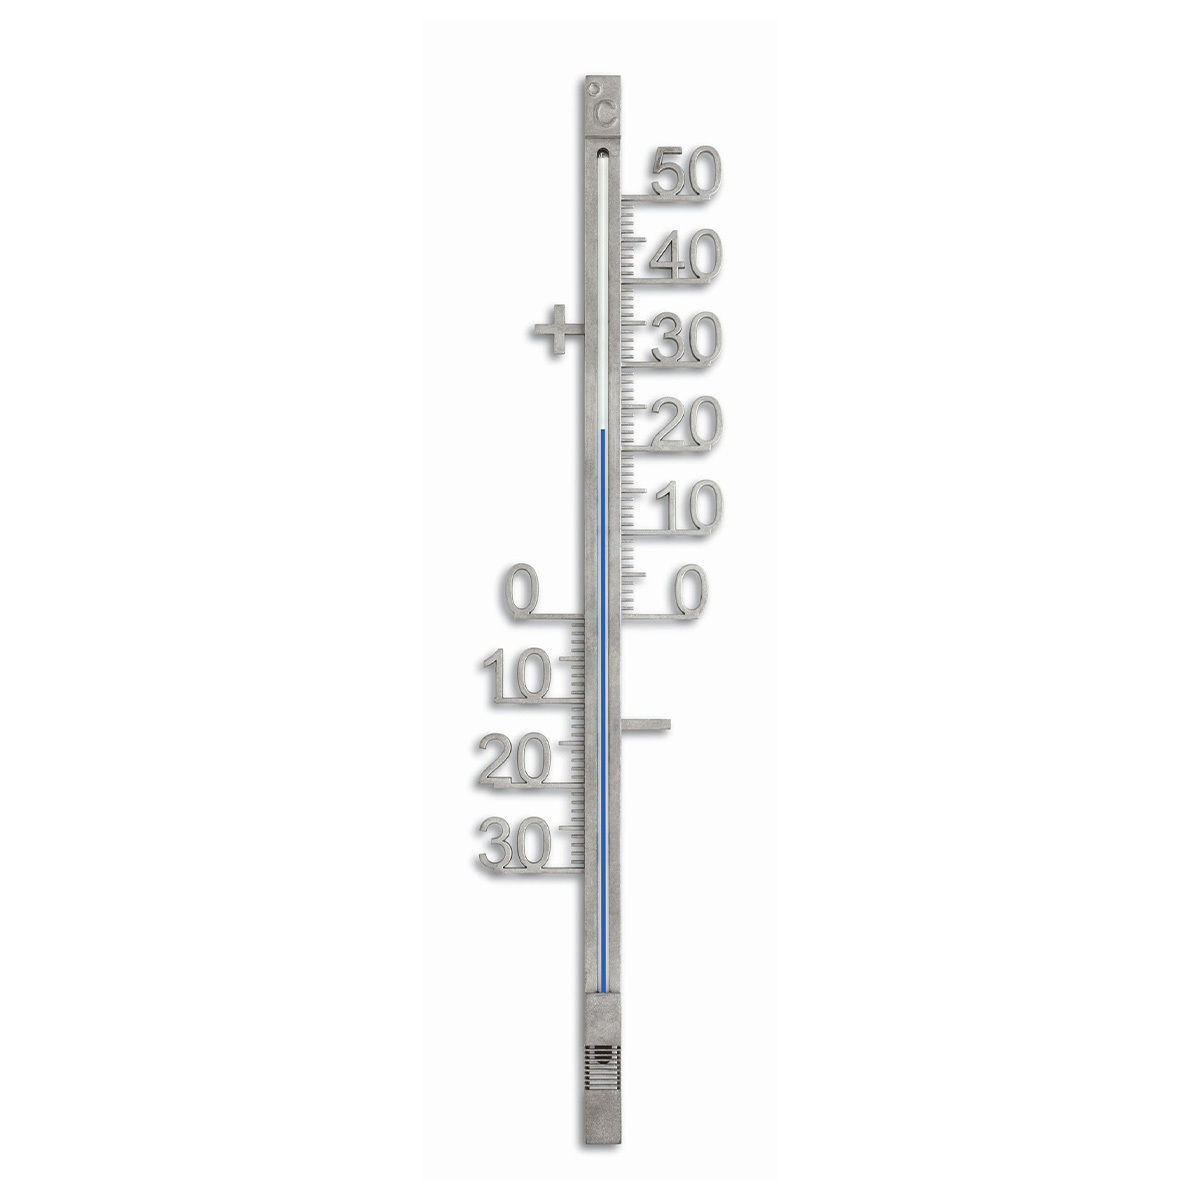 12-5011-analoges-aussenthermometer-metall-1200x1200px.jpg